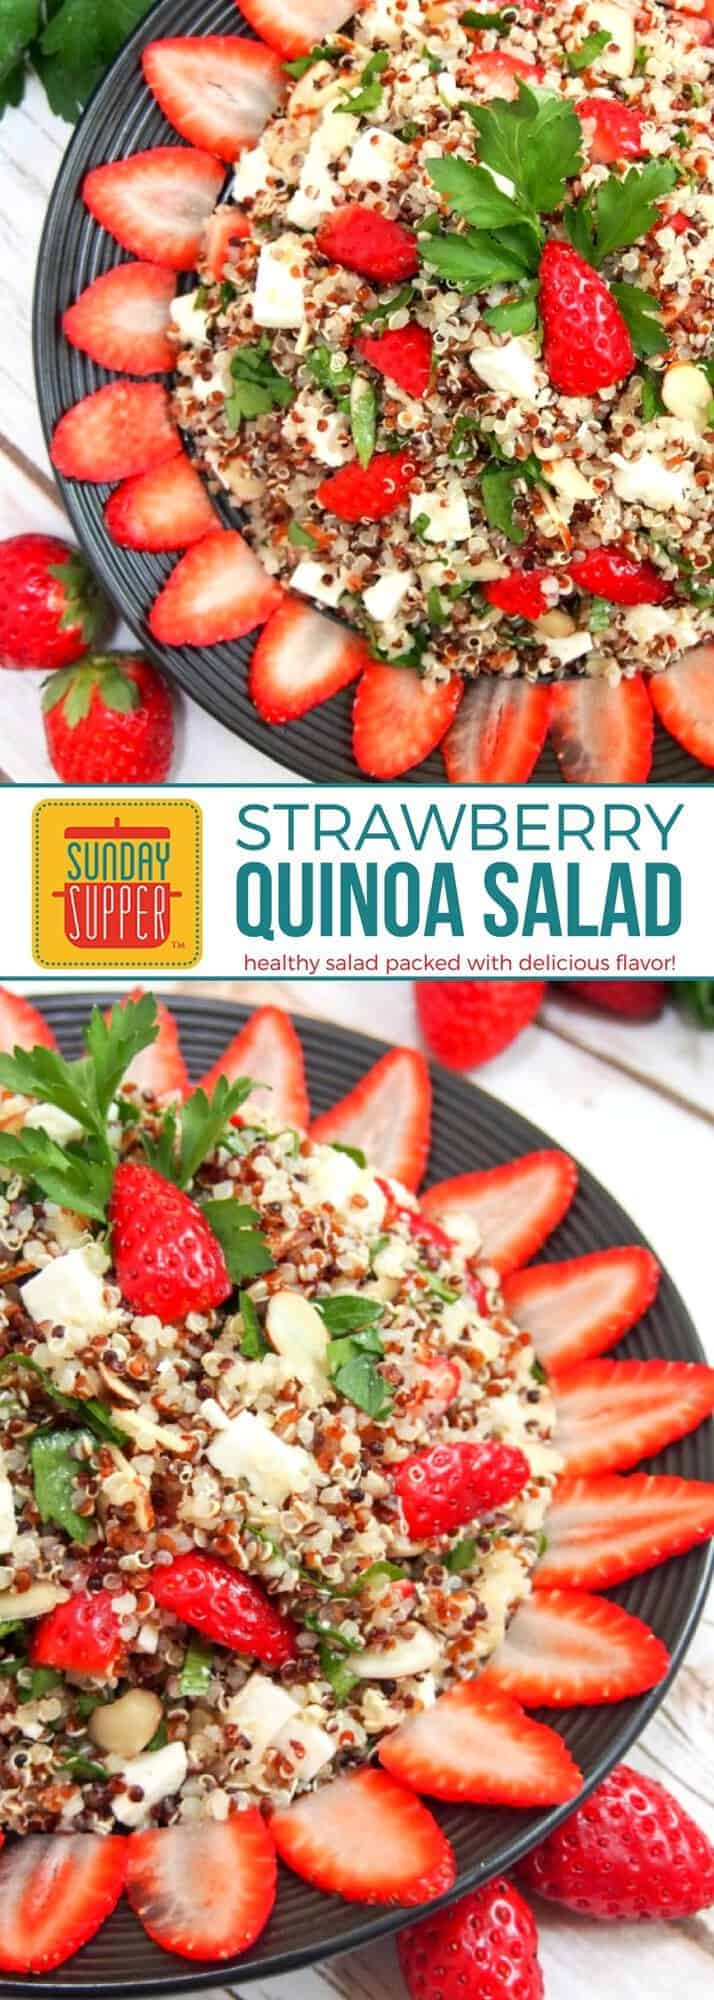 Healthy doesn't have to be boring! You'll LOVE our Strawberry Quinoa Salad with sweet strawberries, smooth, creamy feta, crunchy almonds and wholesome quinoa. This Sunday Supper recipe for strawberry quinoa salad is sure to brighten your plate while adding lots of healthy stuff to your diet! #SundaySupper #HealthyRecipes #StrawberryRecipesd #SaladRecipes #FLStrawberry